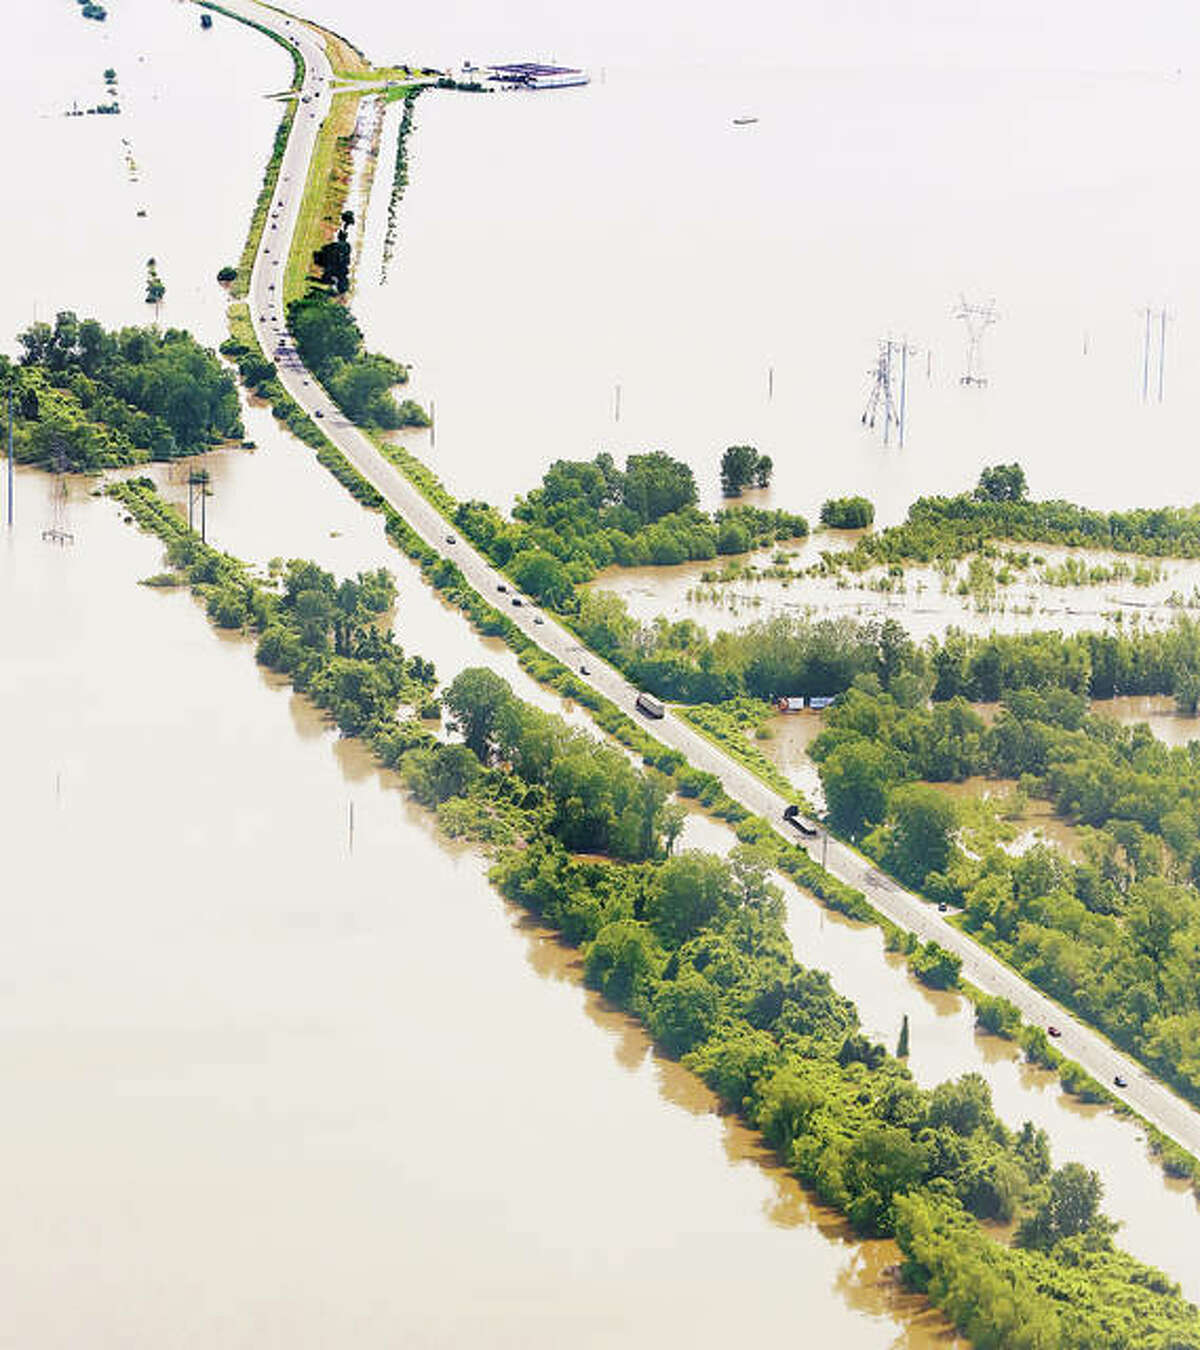 The ways in and out of Alton are getting slimmer by the day. A view of U.S. 67 in West Alton, Missouri, looking north toward the Phillips 66 gas station, upper right, and the Calrk Bridge, show the roadway is quite isolated by floodwaters. Lower U.S. 67 is completely under water.